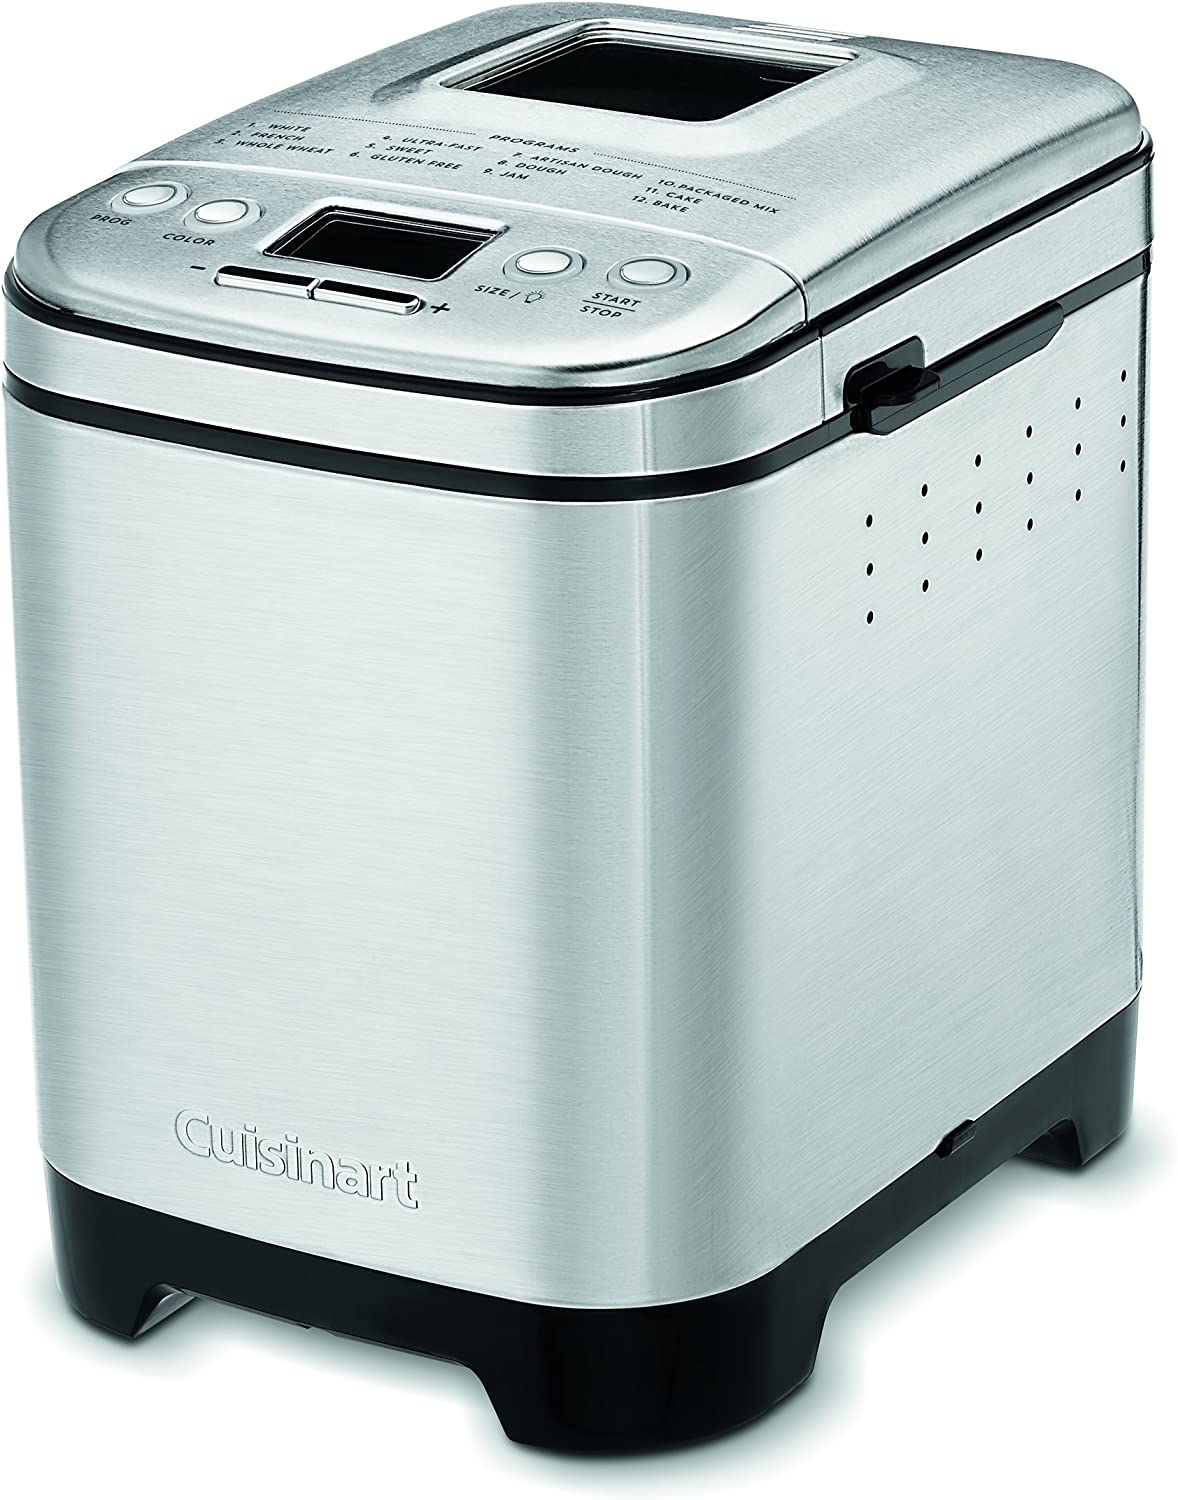 Cuisinart Bread Maker, New Compact Automatic